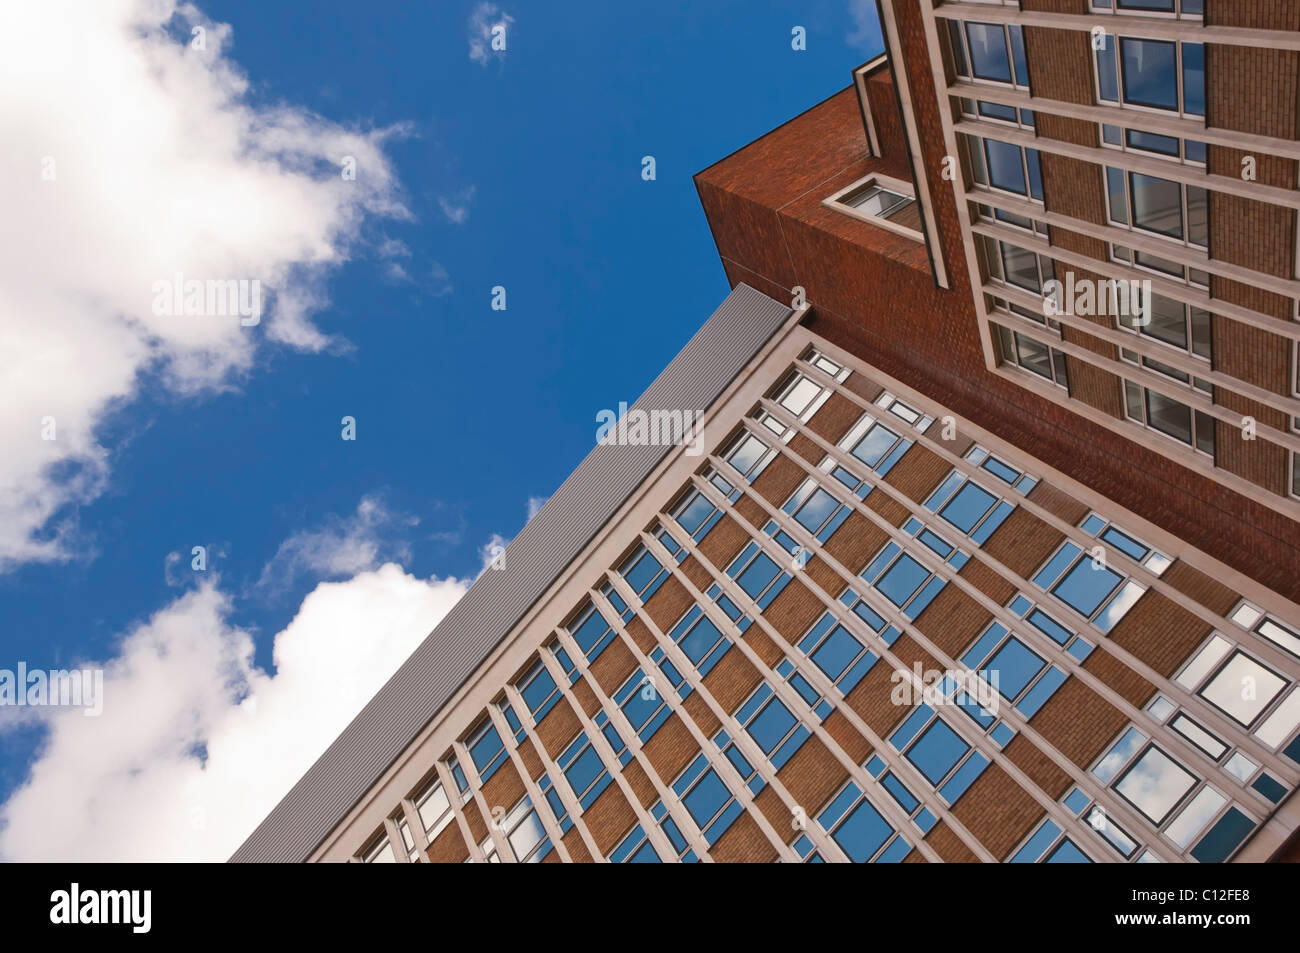 Windows on an office block in the Uk - Stock Image